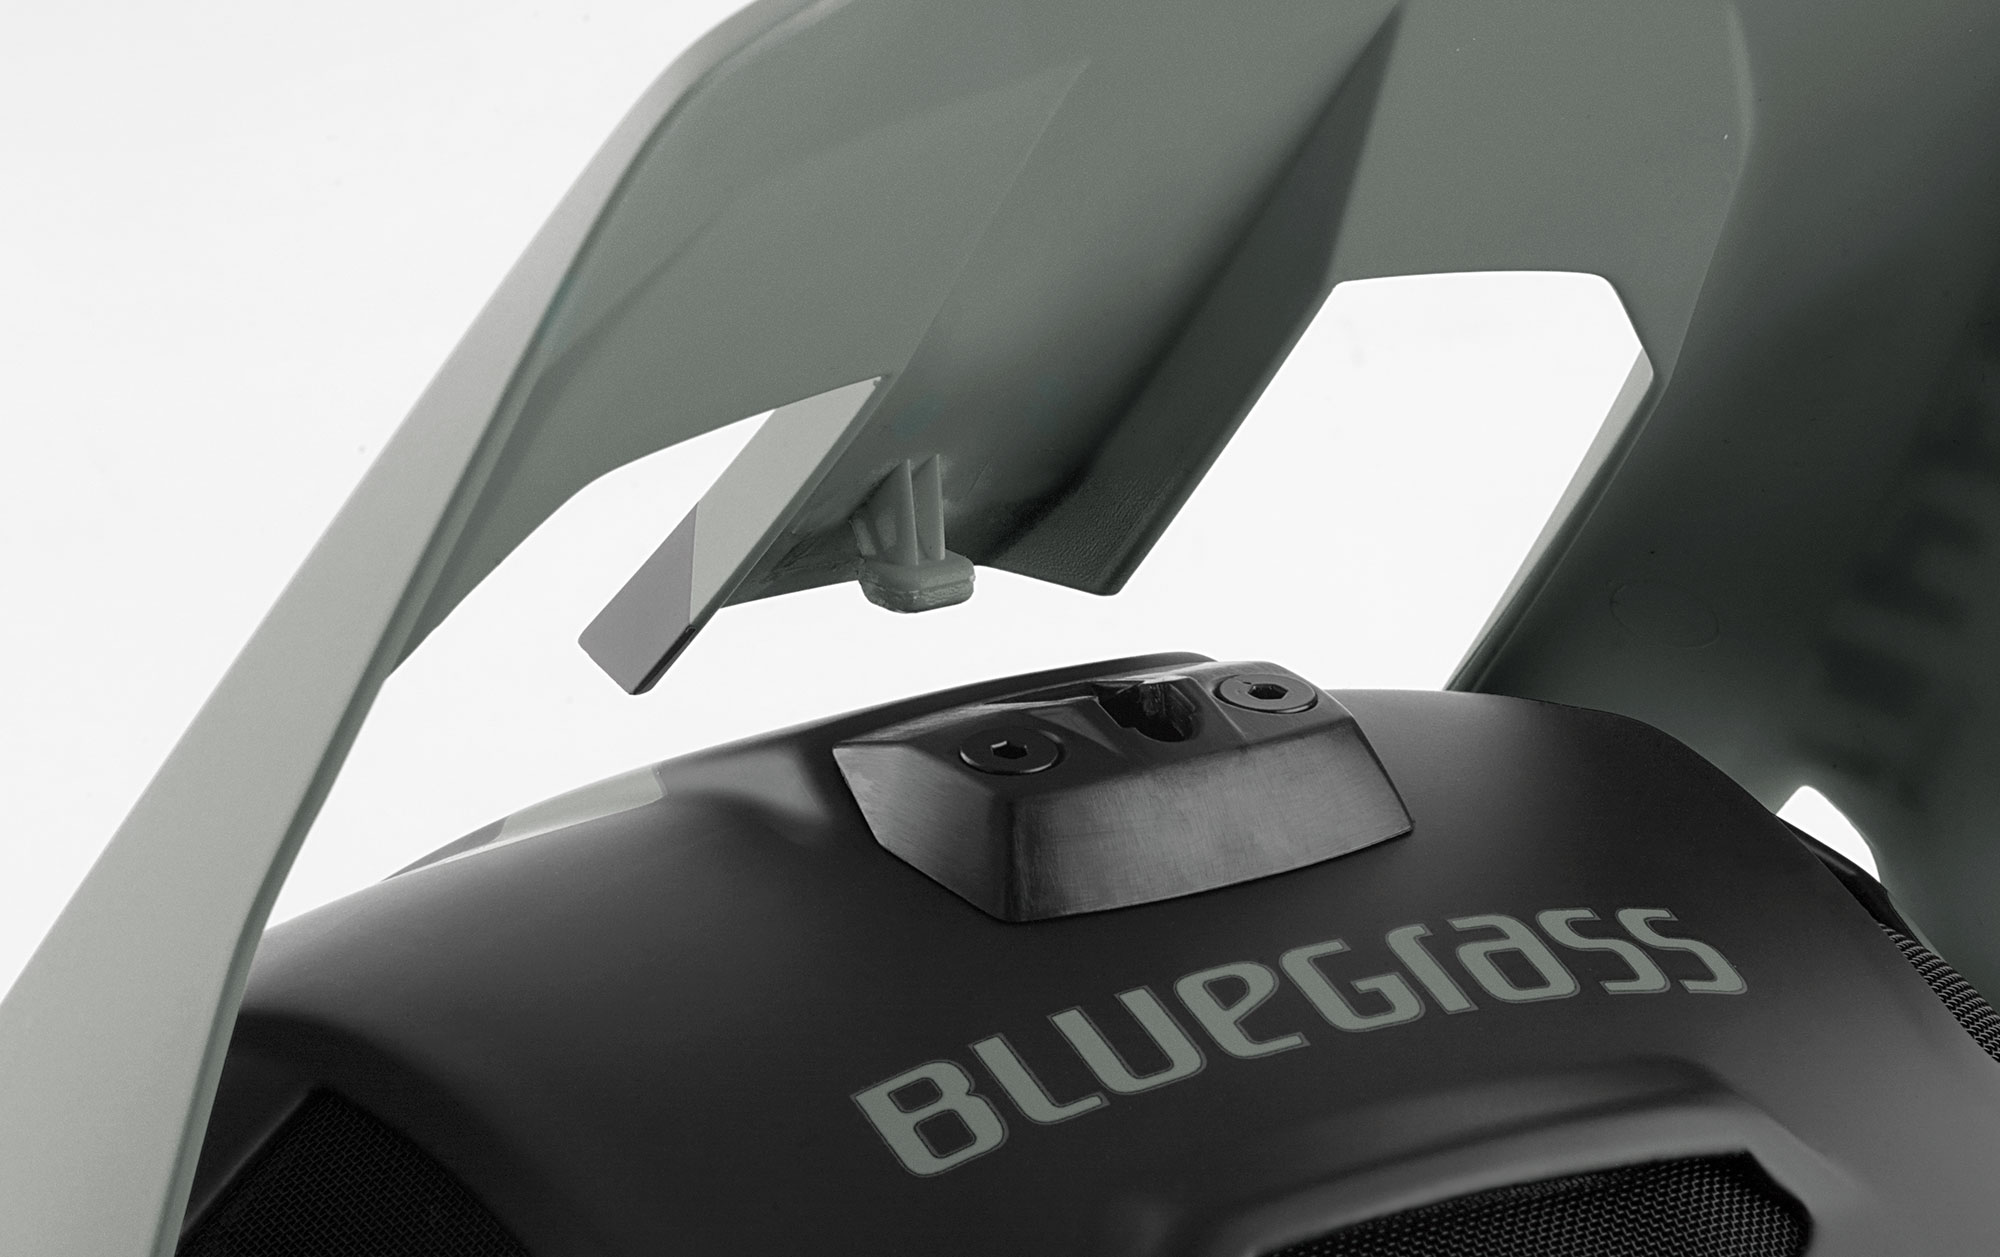 BLUEGRASS Legit Carbon Mips Downhill, BMX and Trail Helmet with Safety-release and flexible visor